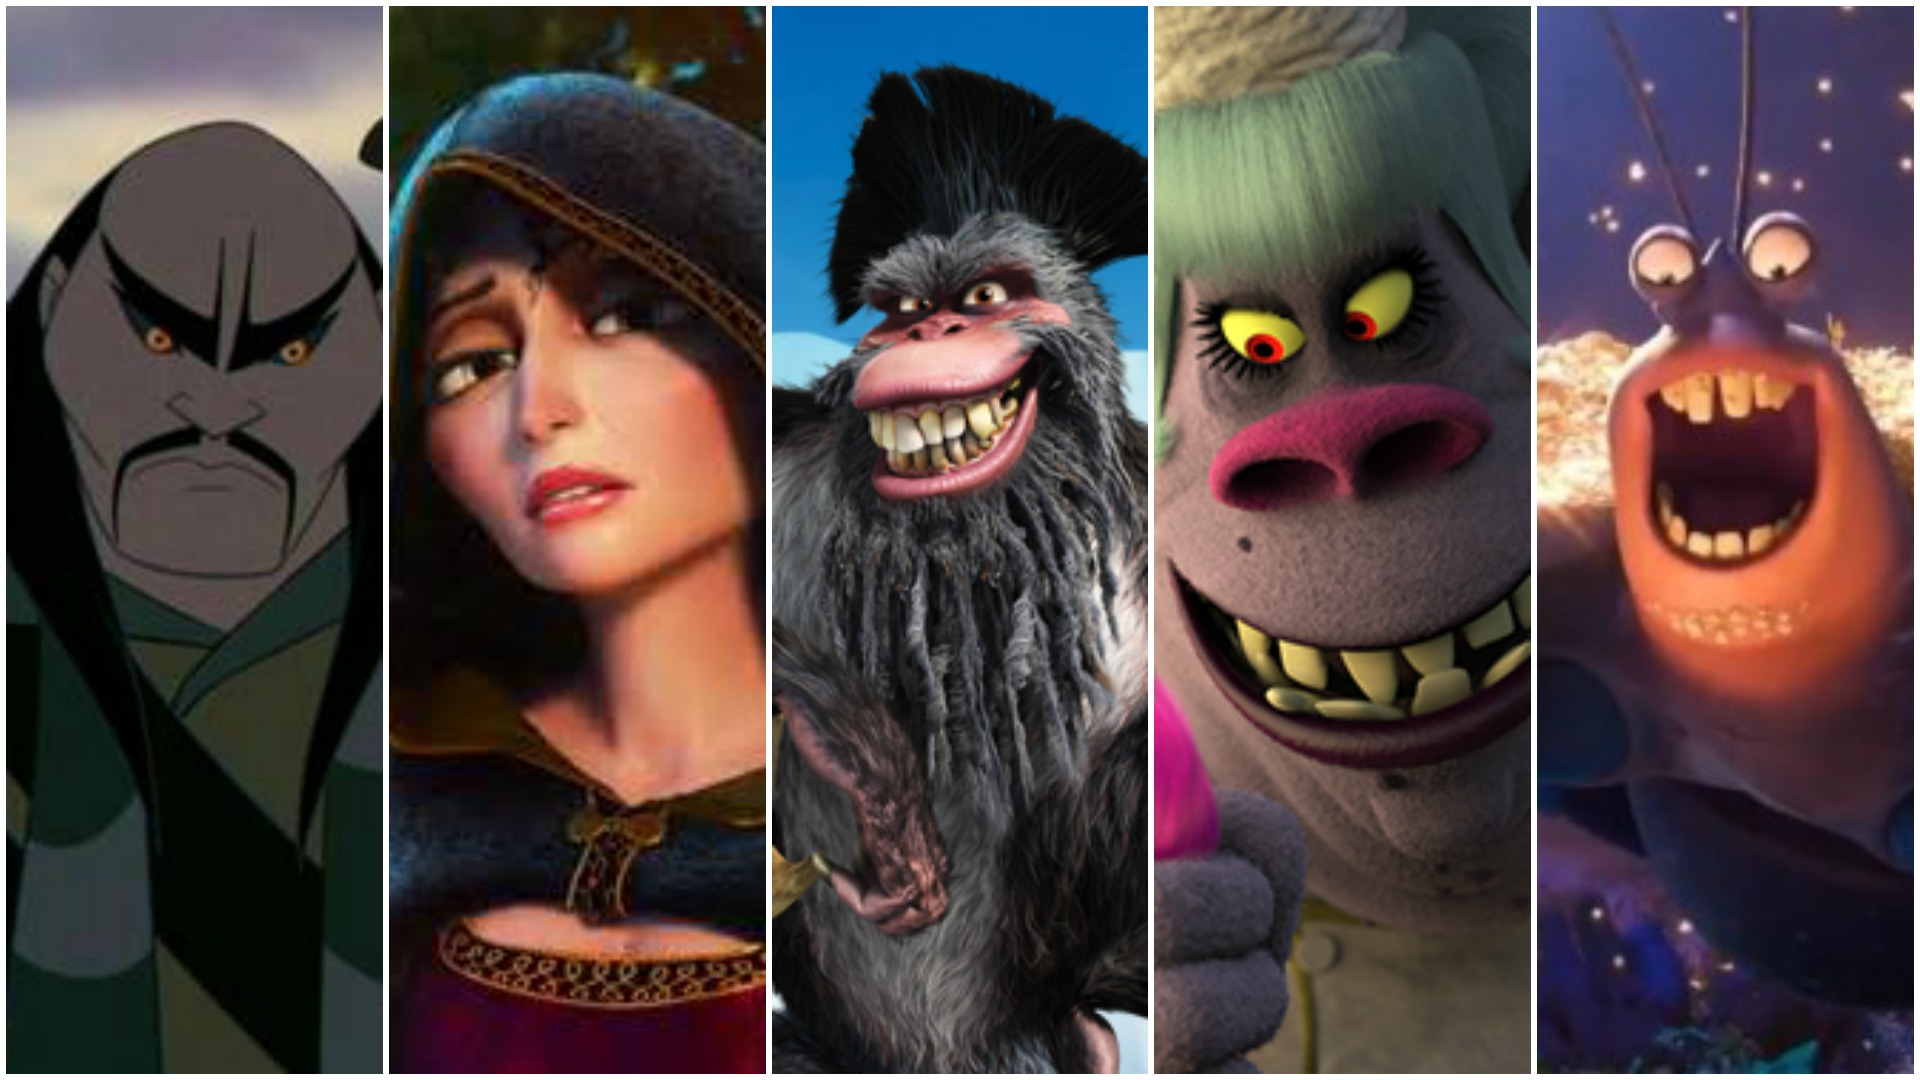 33 Actors You Didn't Realize Voiced Animated Movie Villains